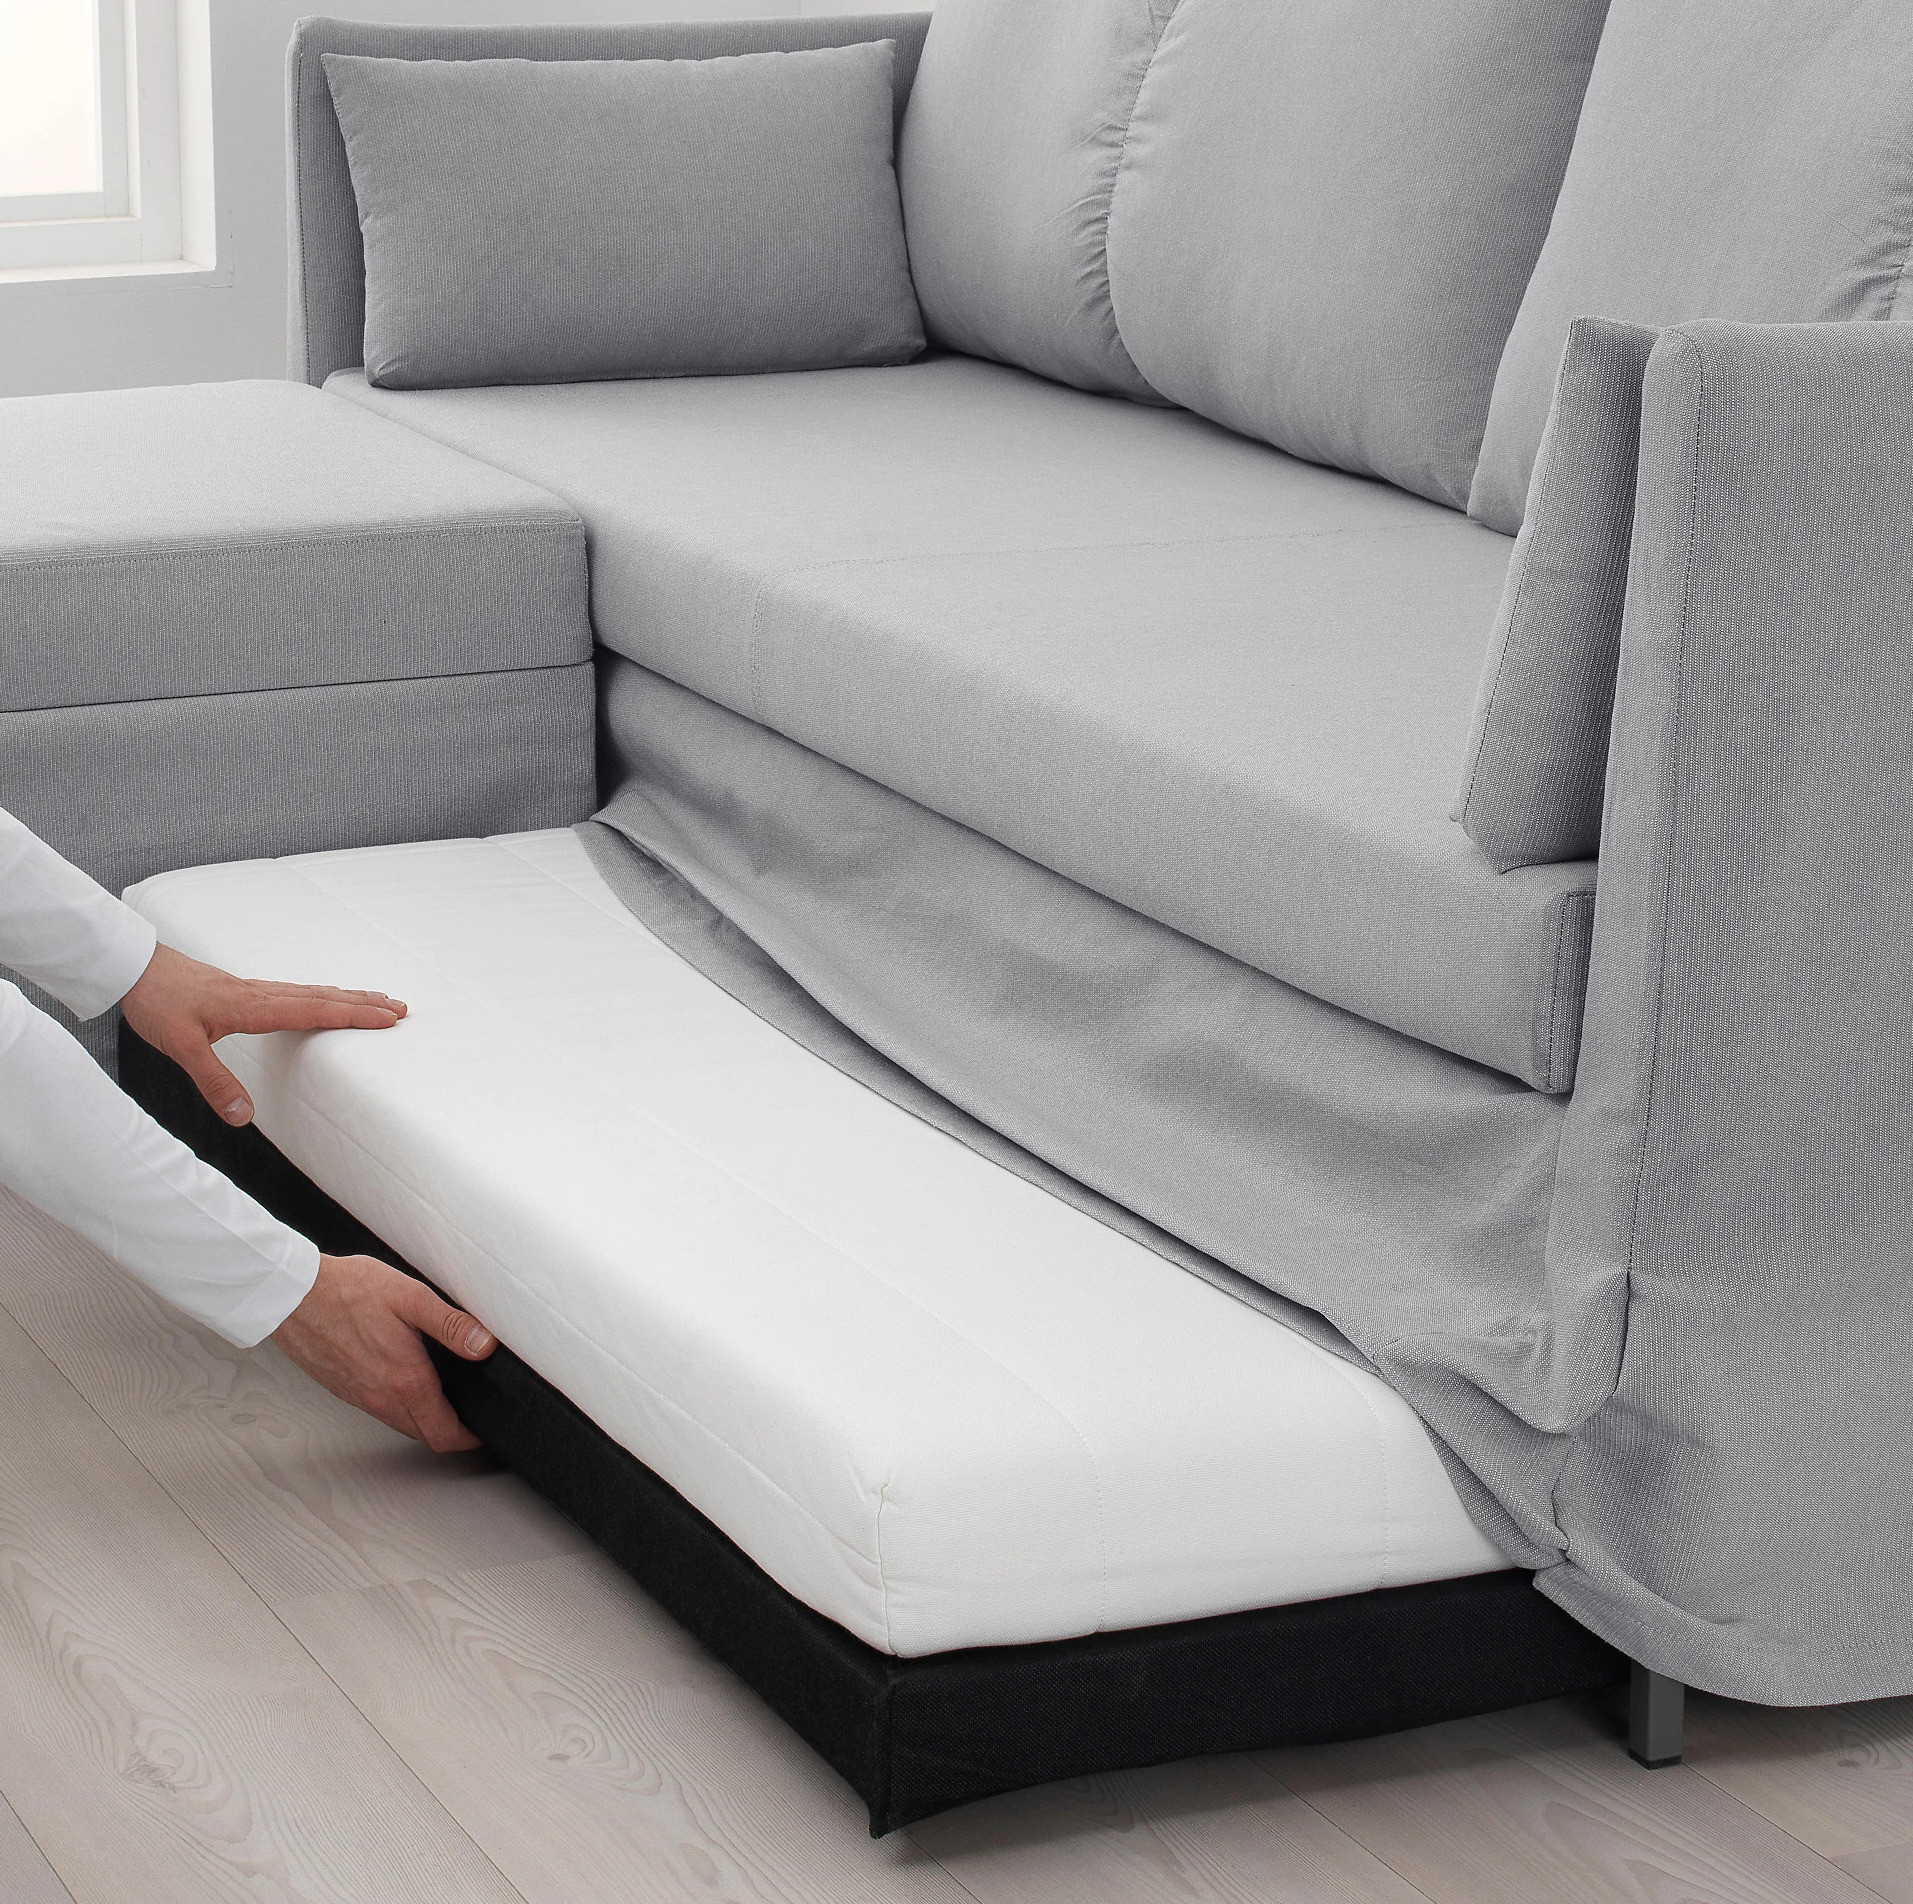 The 8 Most Comfortable Sleeper Sofas According To Reviewers